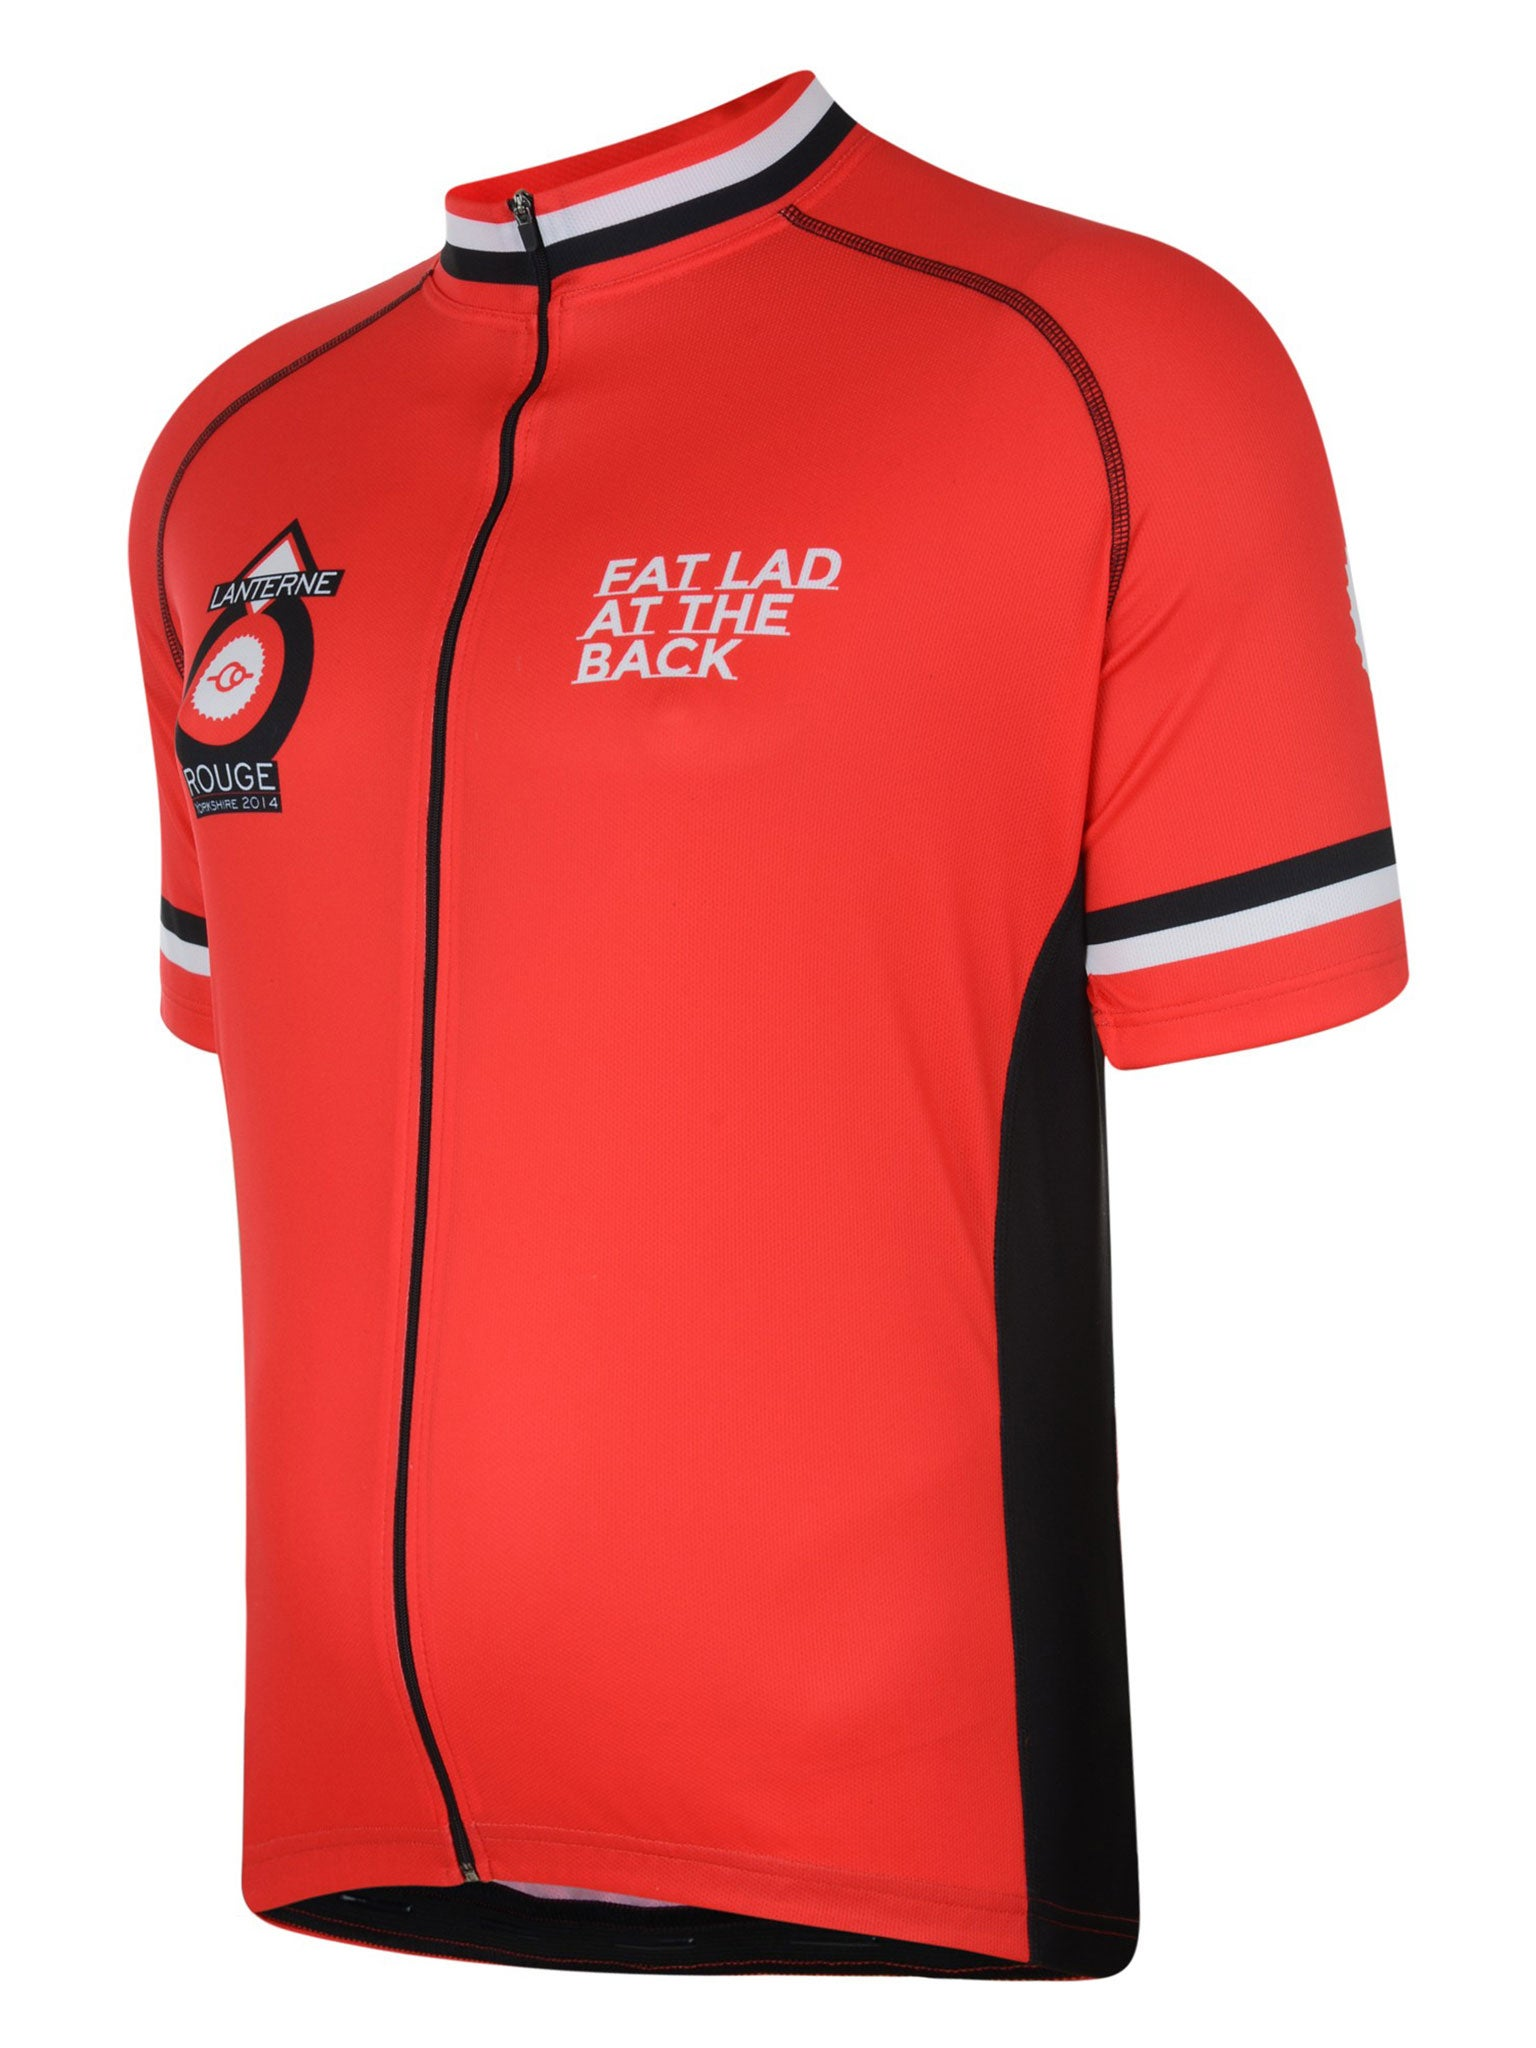 Tenn Active Ladies short Sleeve Cycling Bicycle Shirt Sports Jersey Black Red